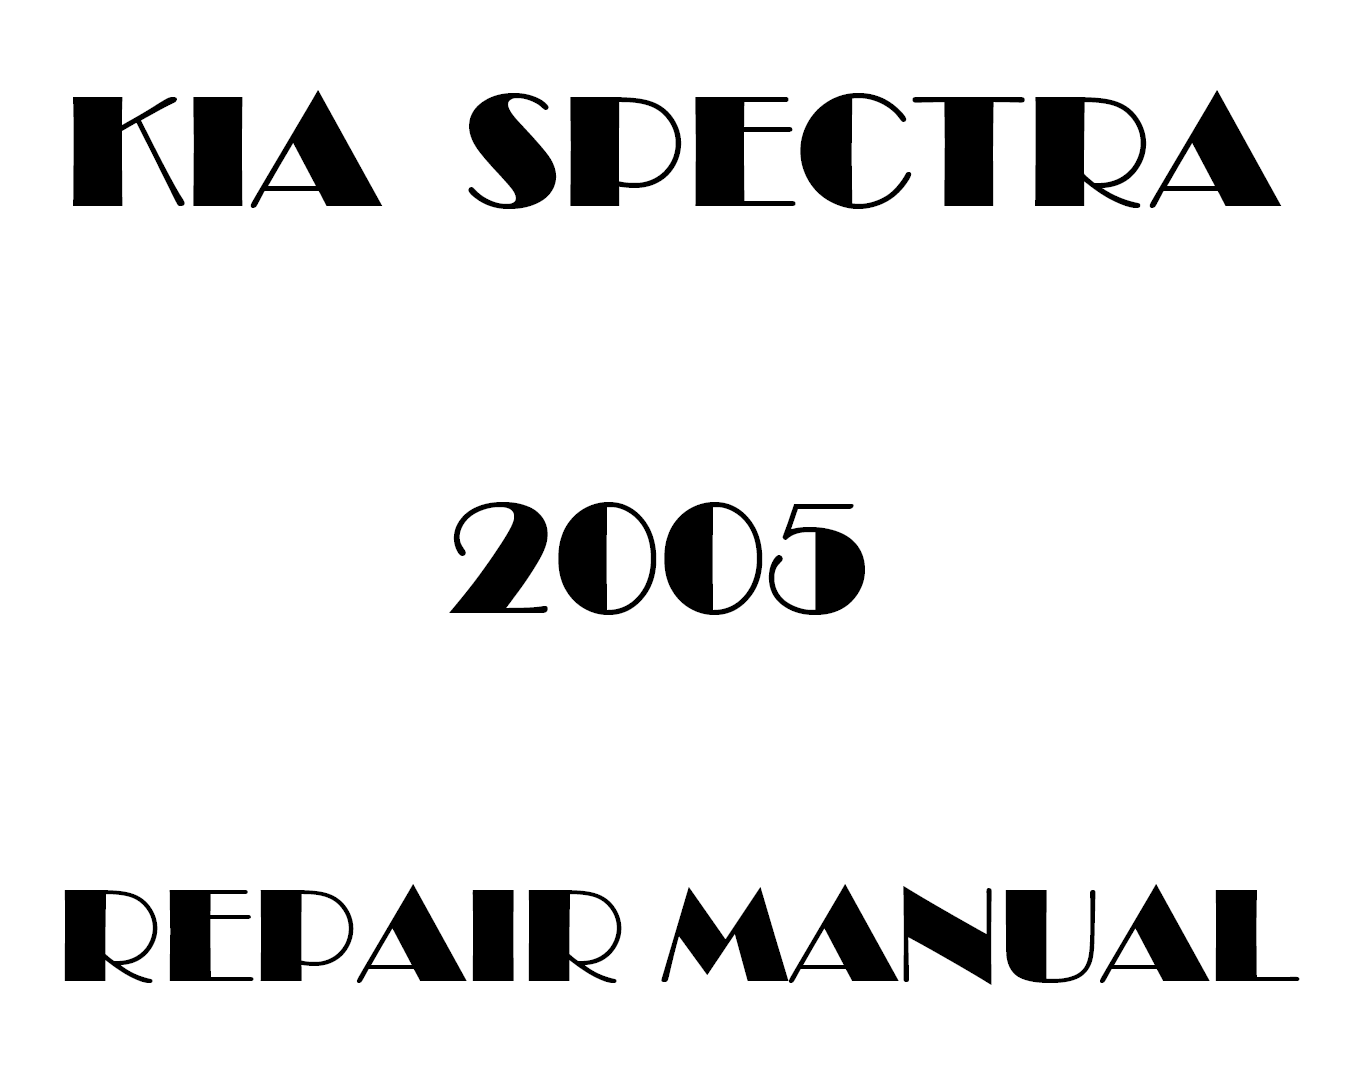 2005 Kia Spectra repair manual